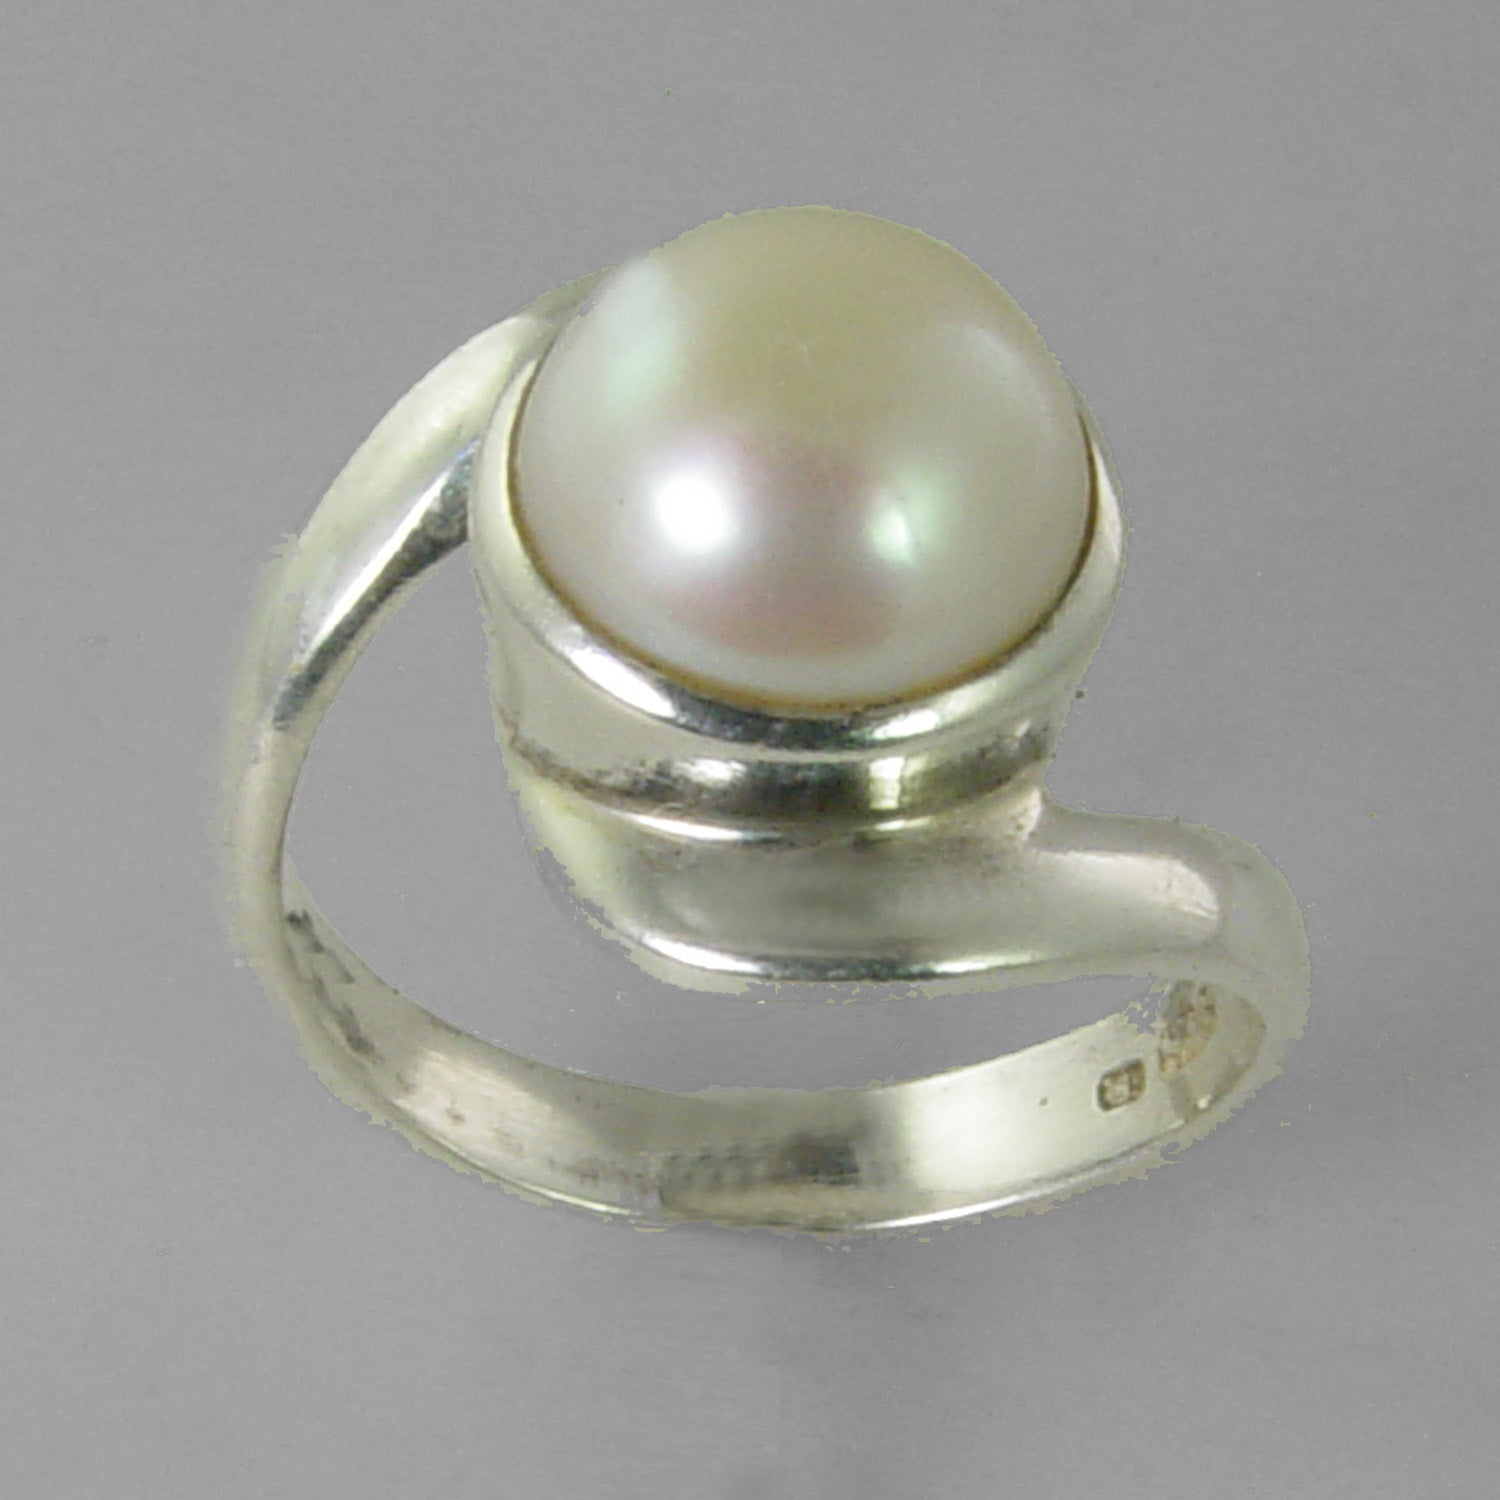 Pearl 5 ct Freshwater Pearl Bezel Bypass Set Sterling Silver Ring, Size 8.5